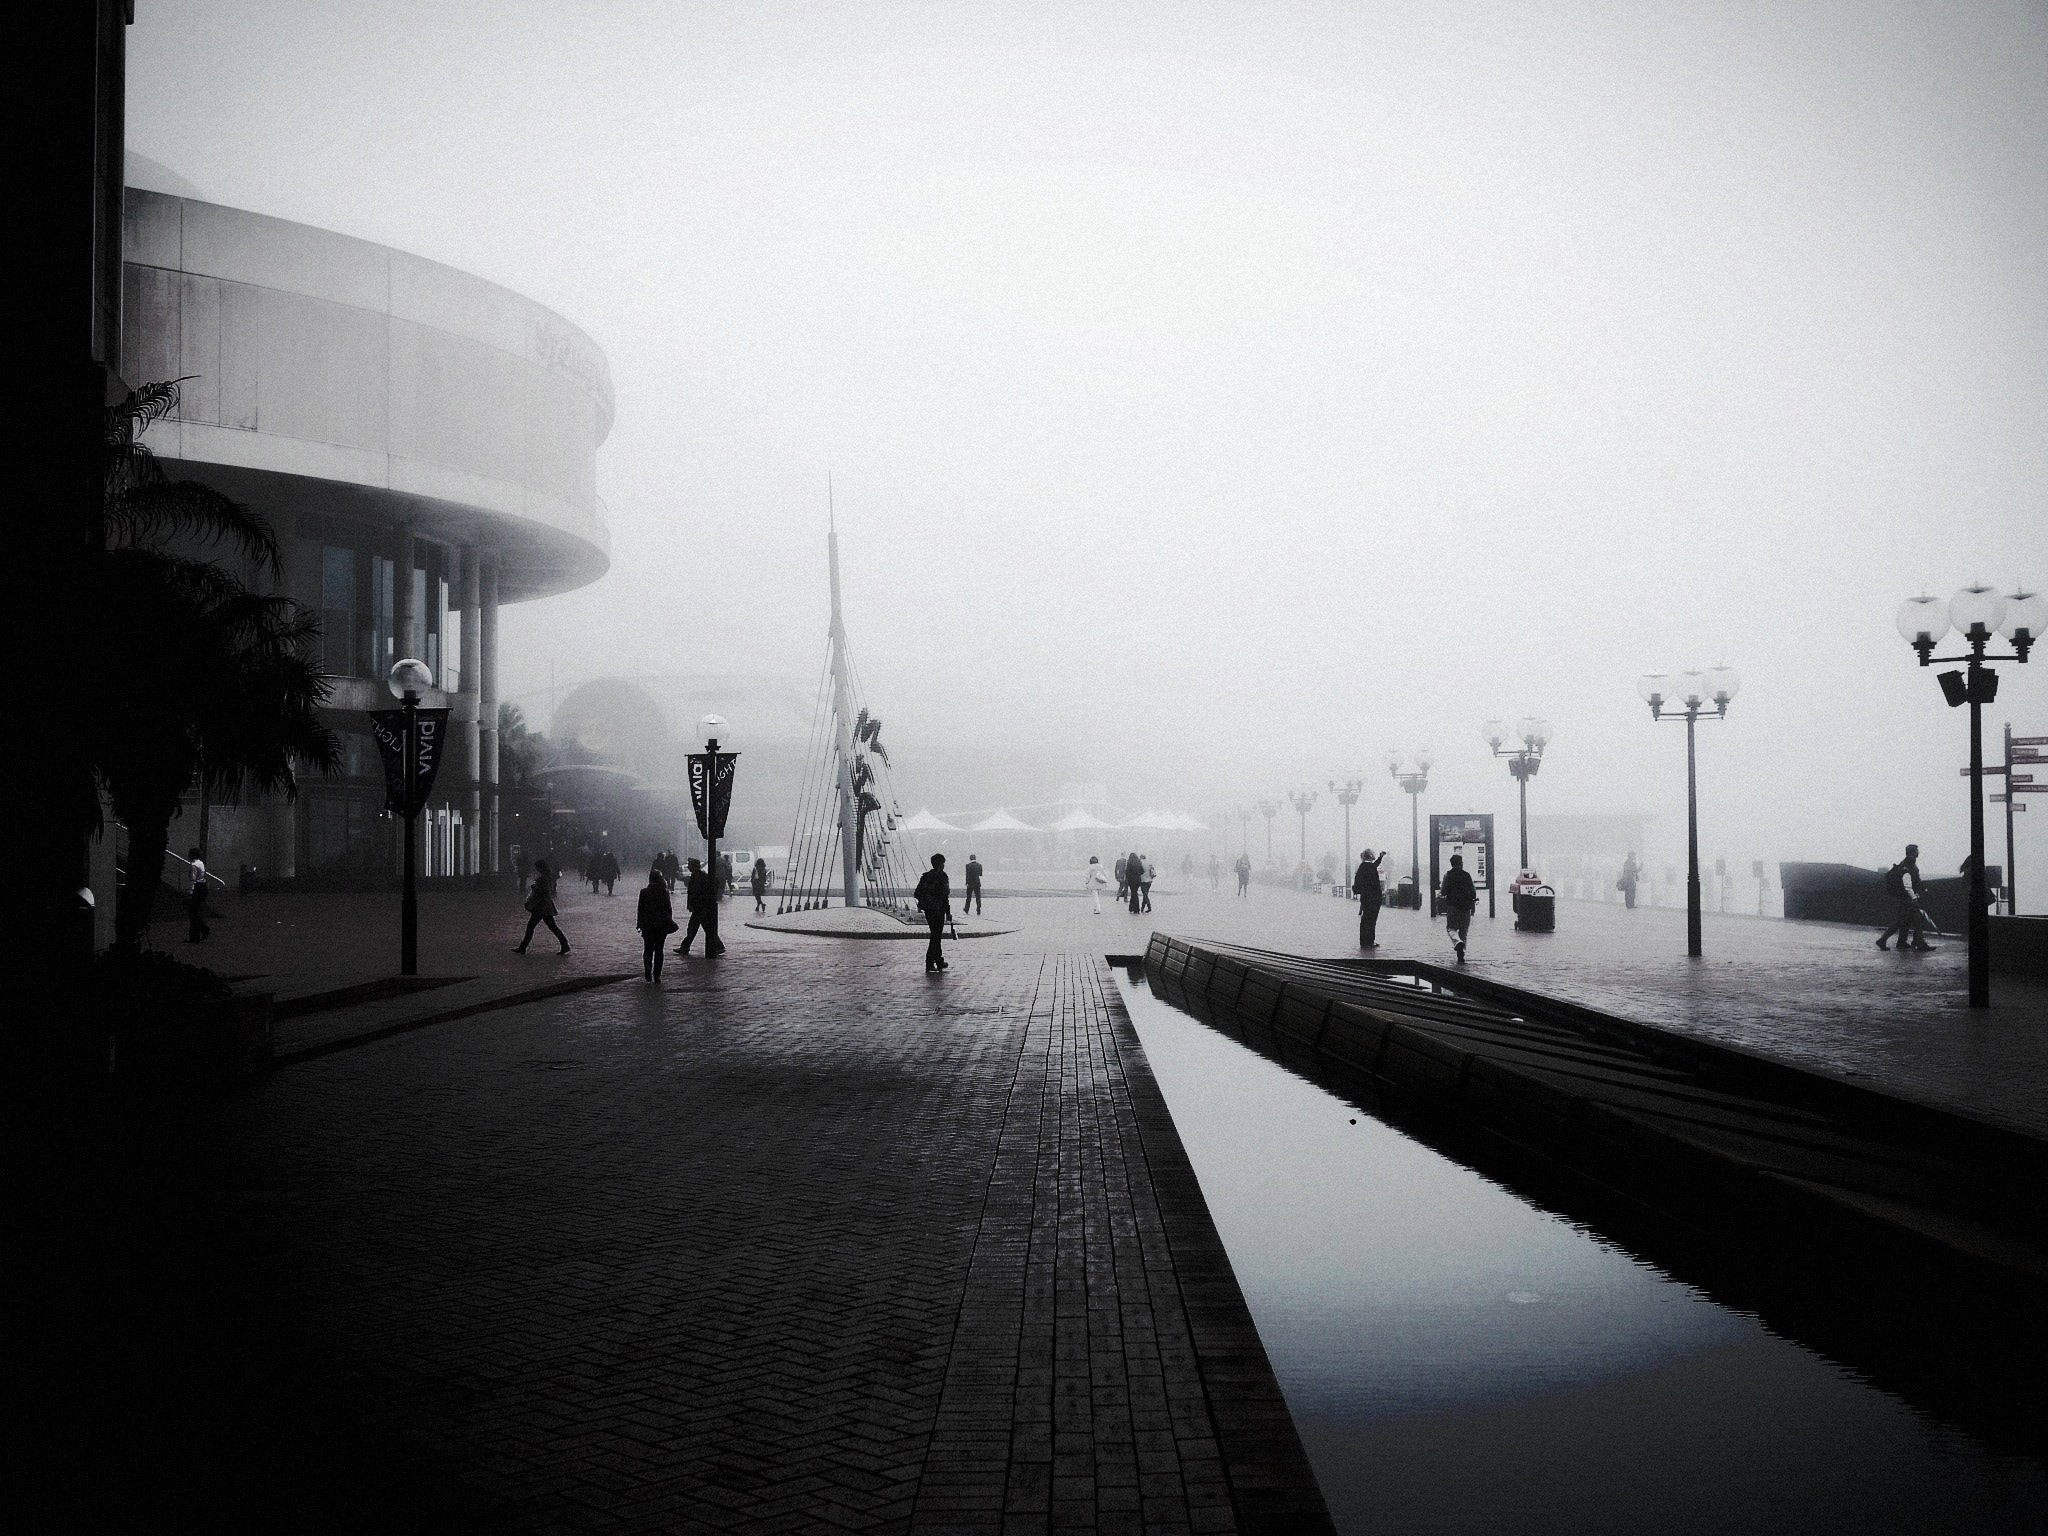 Photograph Misty Morning at Darling Harbour by tsuken on 500px